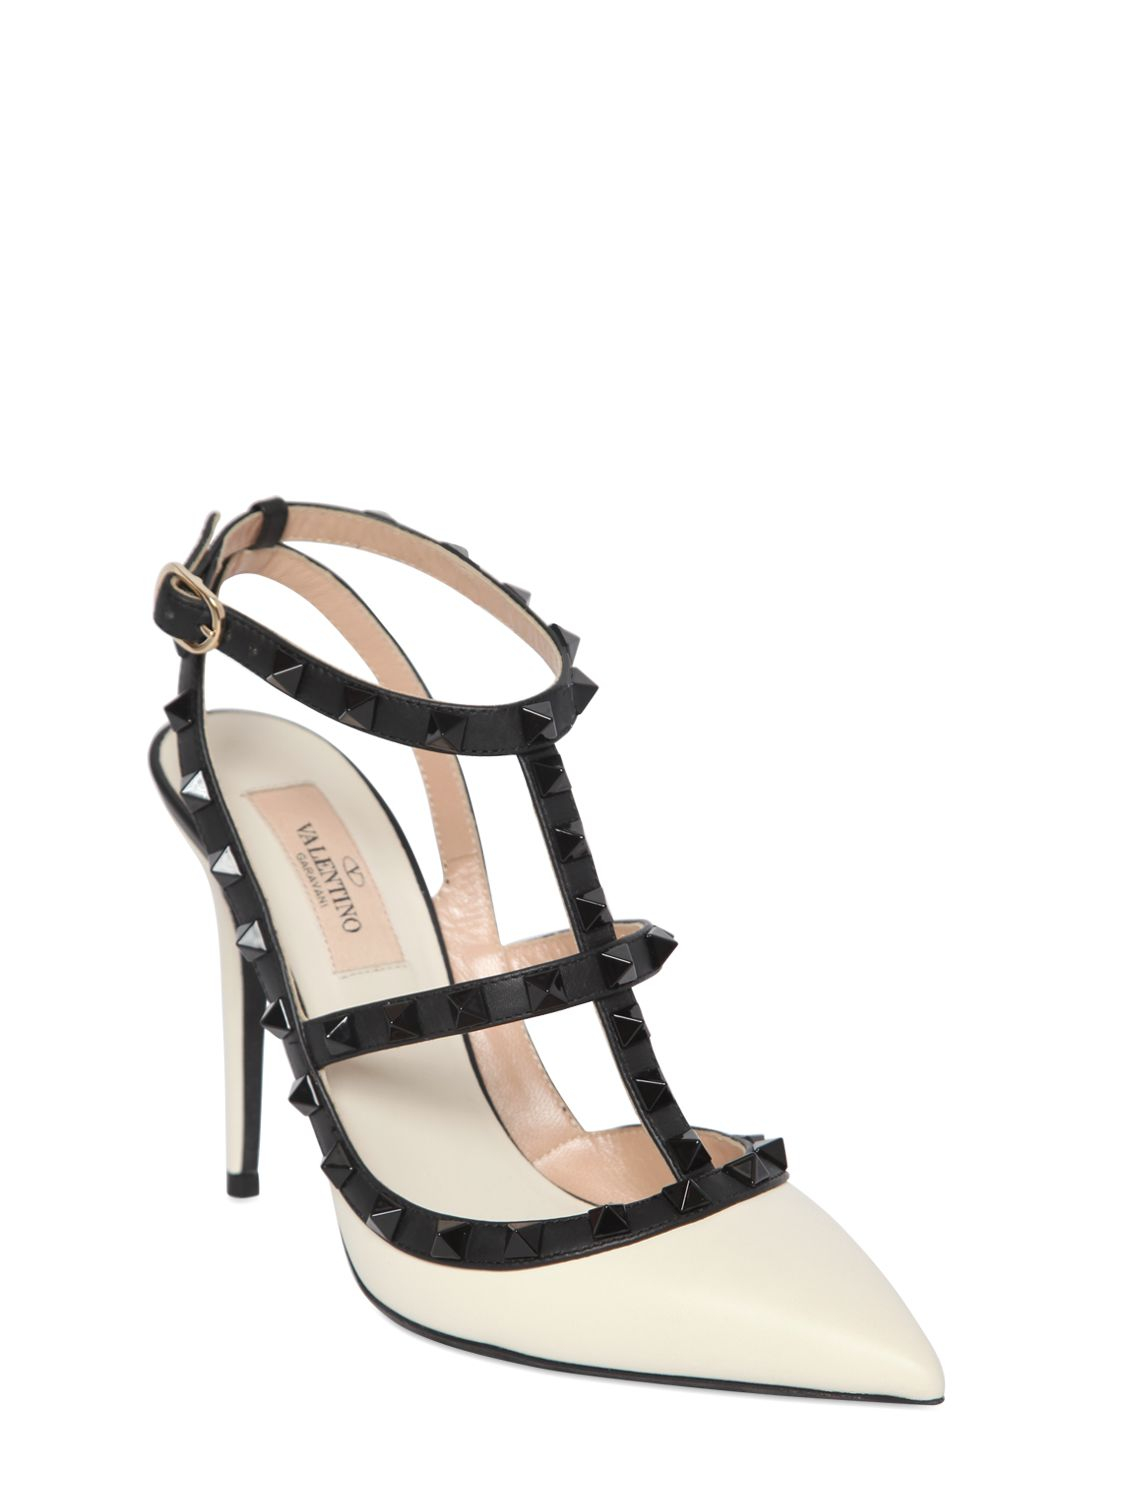 valentino 100mm rockstud two tone leather pumps in black